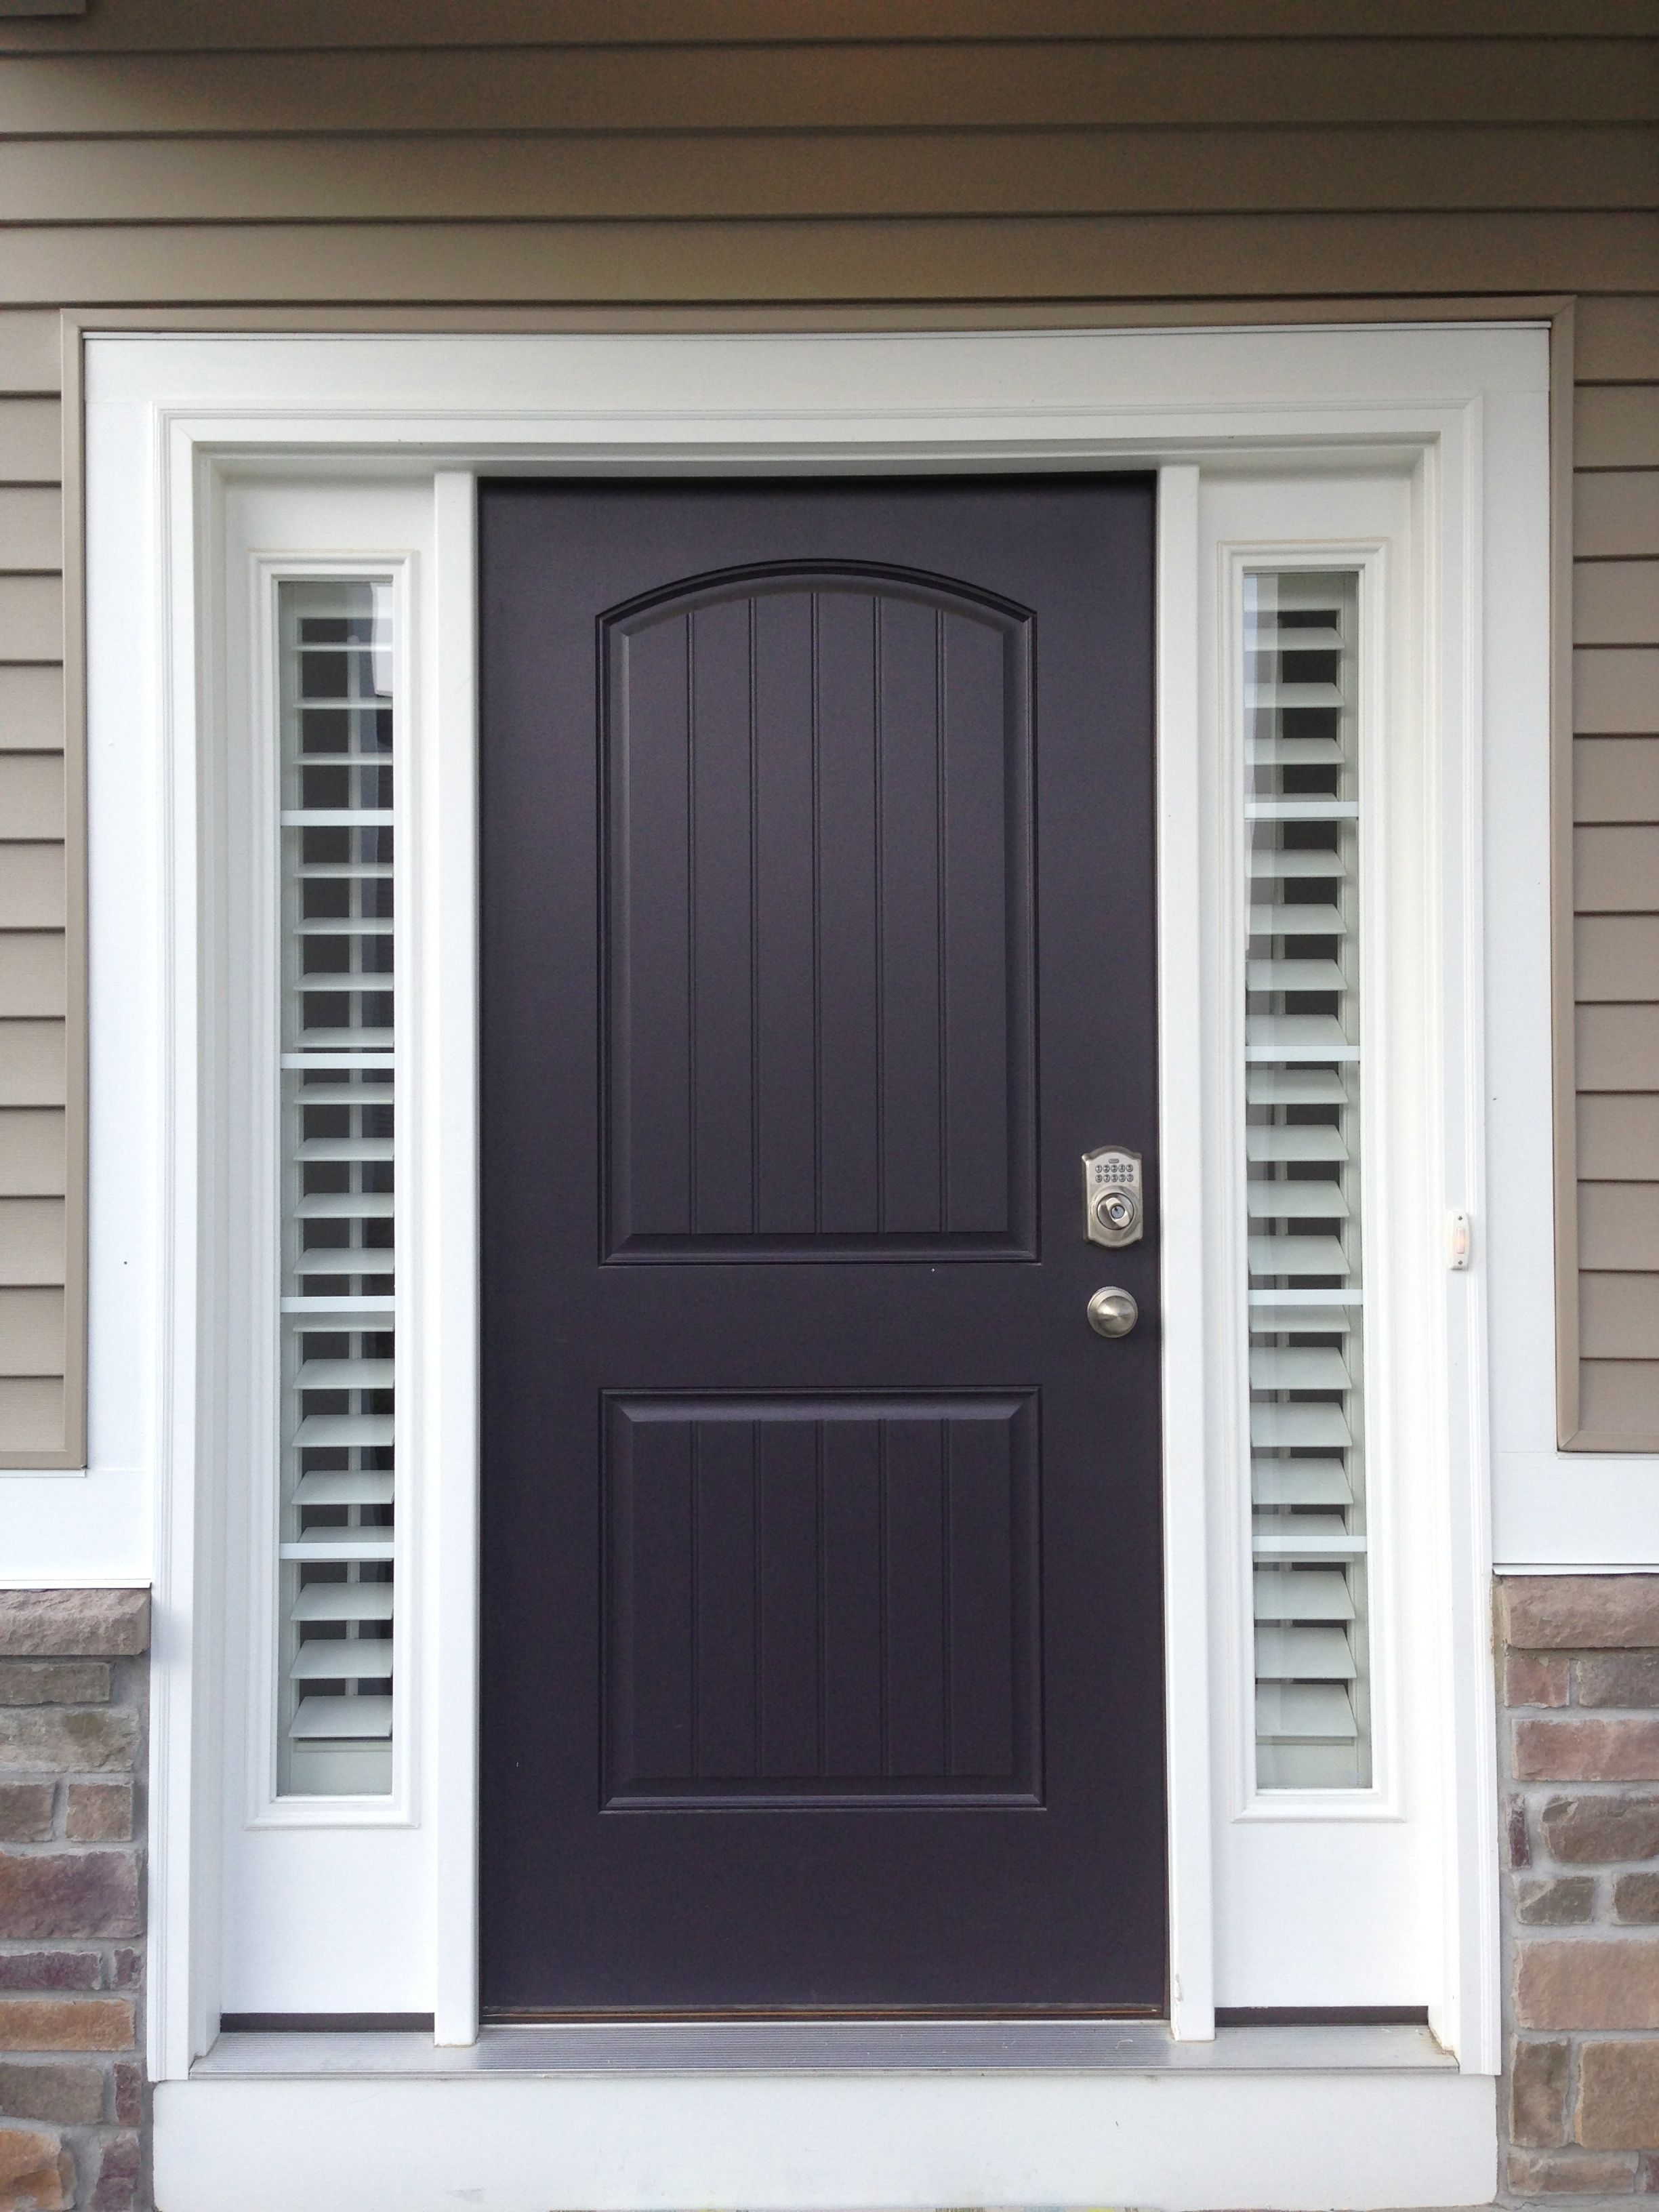 Entry door sidelight window shutters sunburst shutters for Front door with window on top